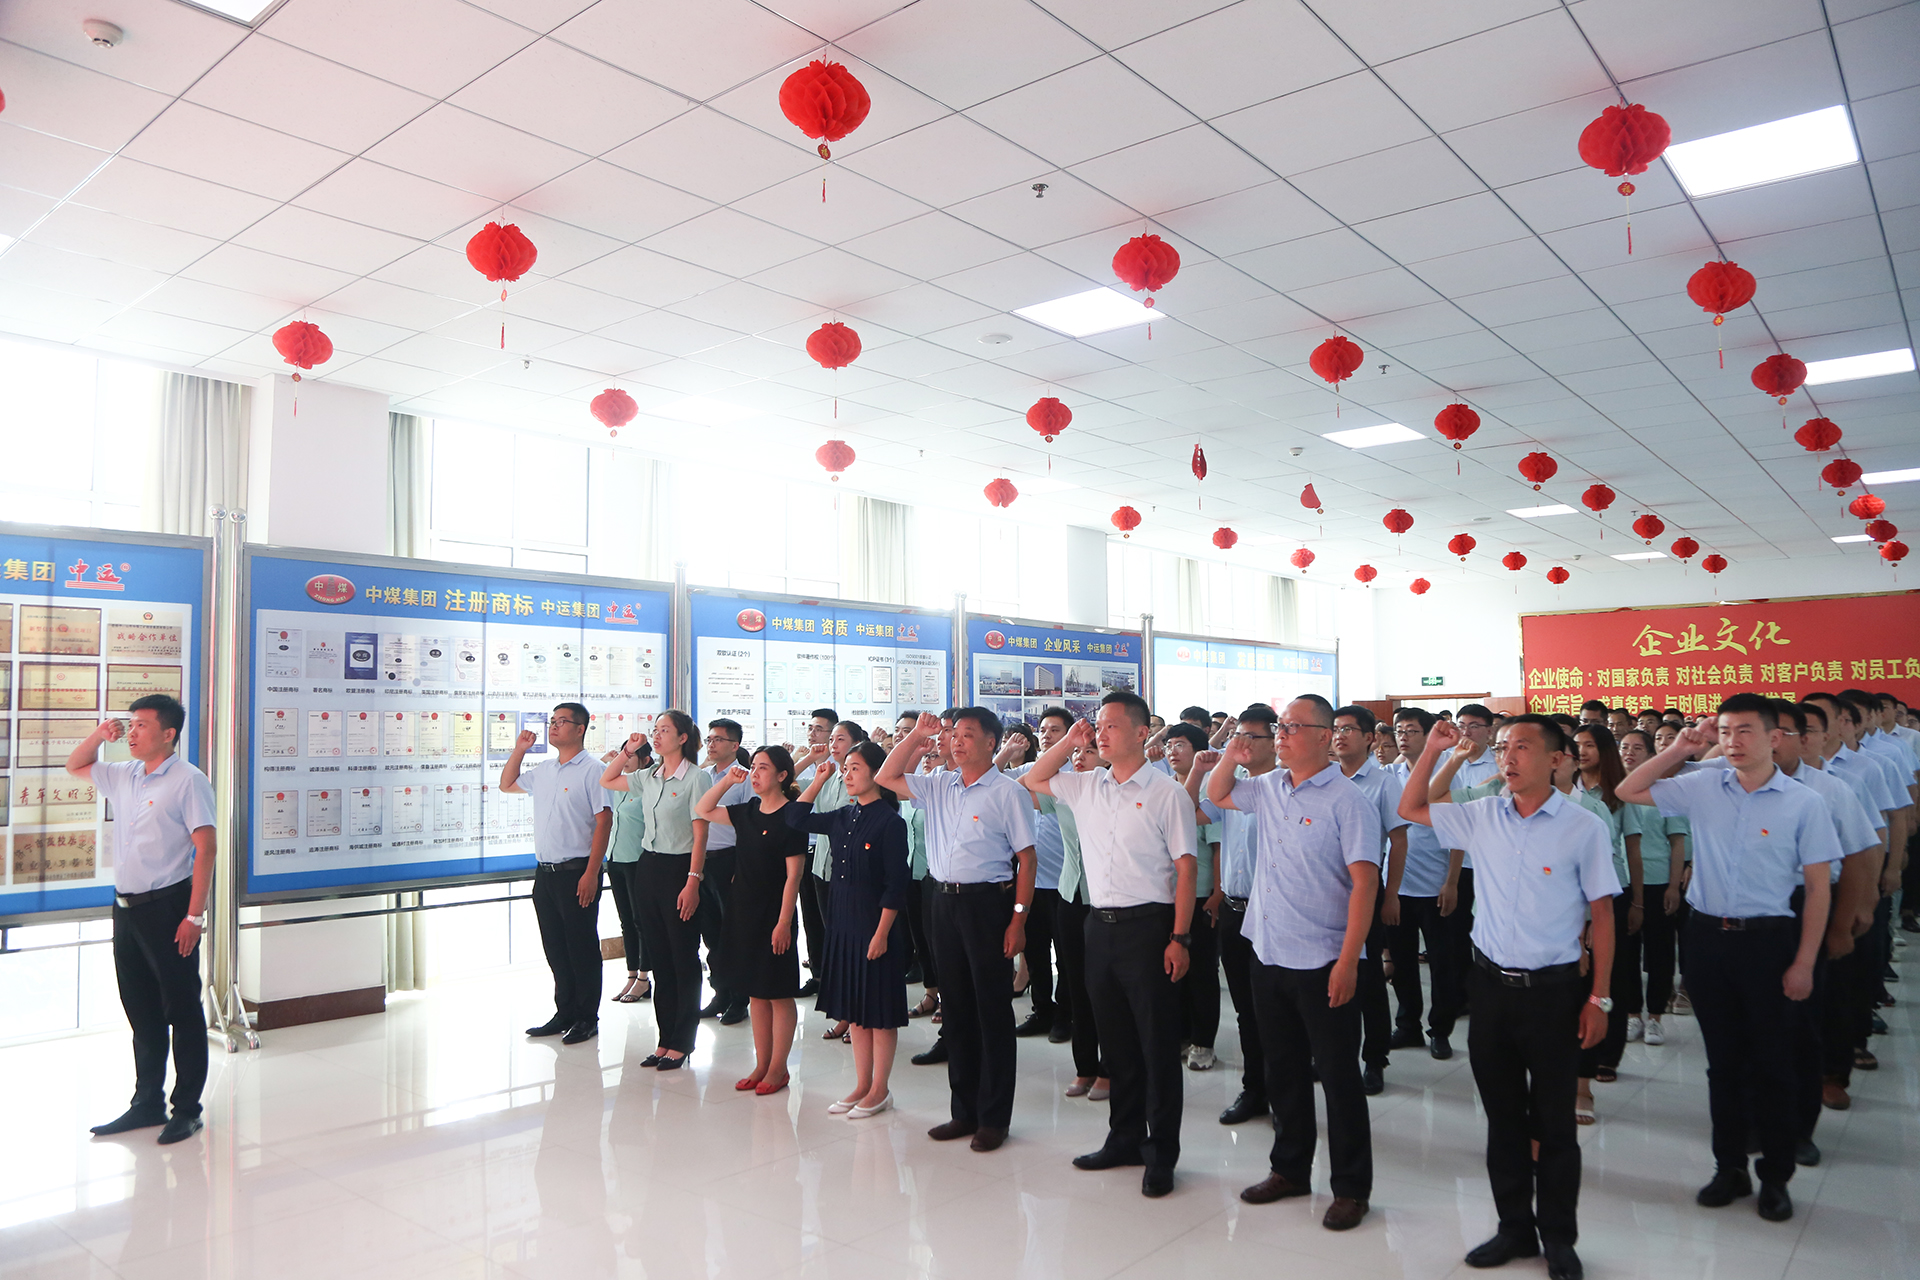 Shandong Tiandun Held An Event Celebrating The 99th Anniversary Of The Founding Of The Party